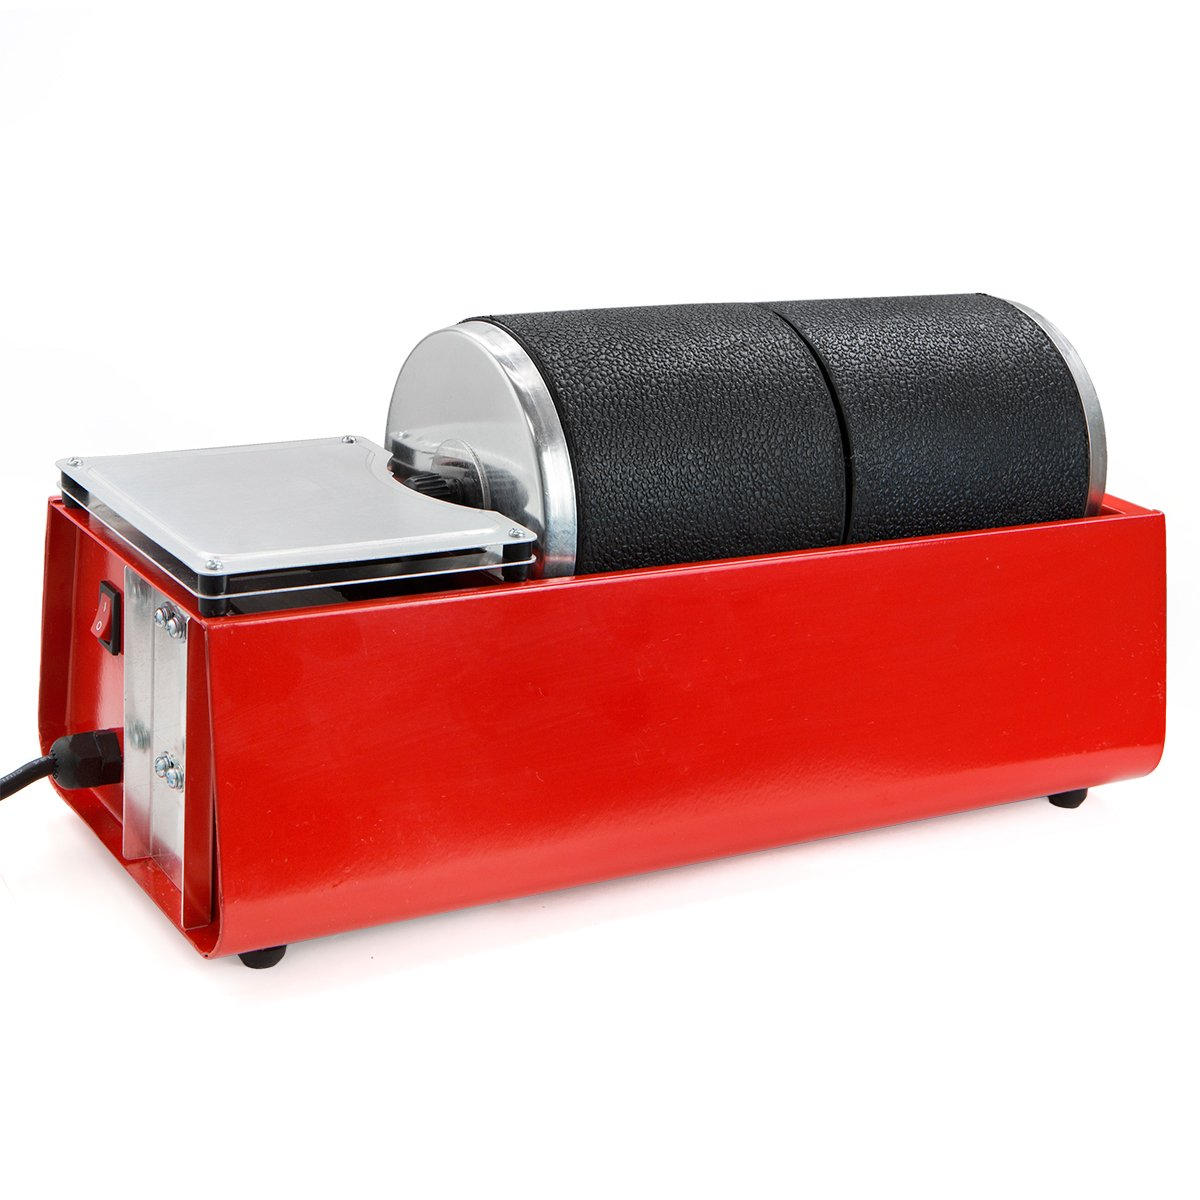 XtremepowerUS Dual Drum Rotary Jewelry Rock Tumbler Polisher for Stone Metal Jewelry 6LBS by XtremepowerUS (Image #1)